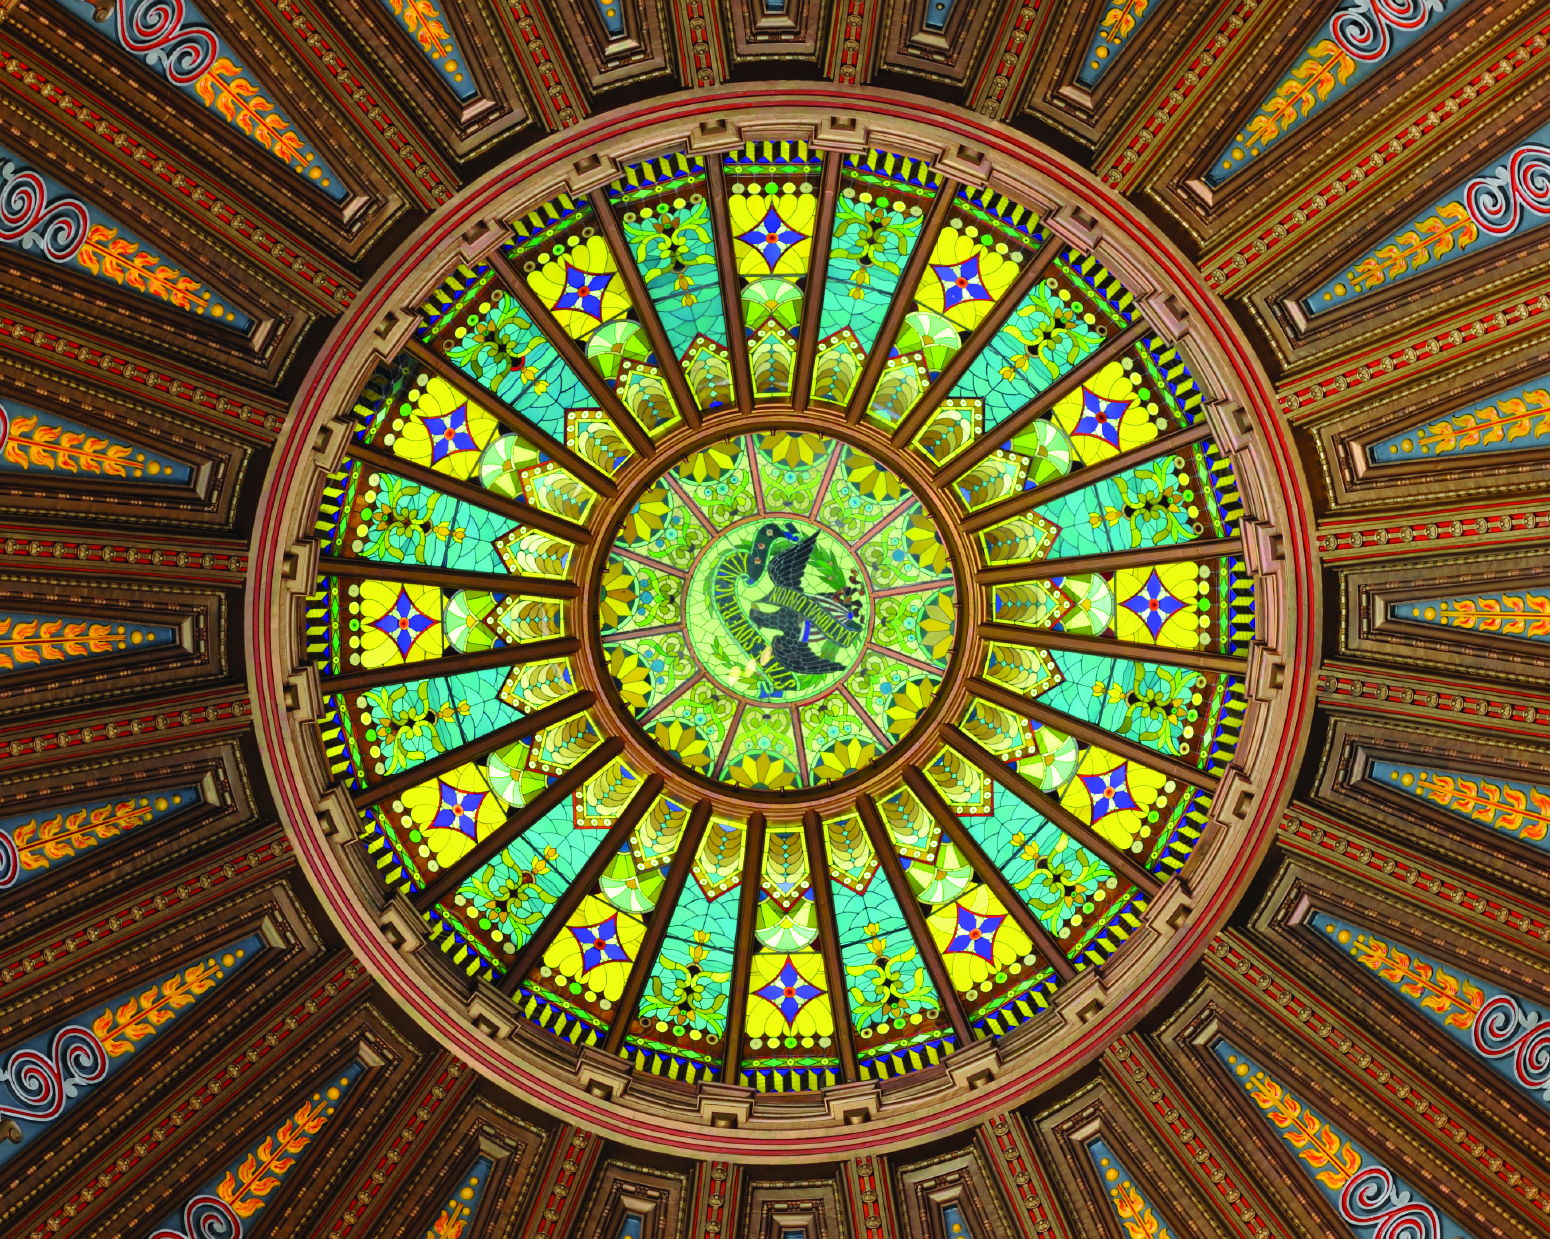 The stained glass ceiling of the Illinois State Capitol dome.